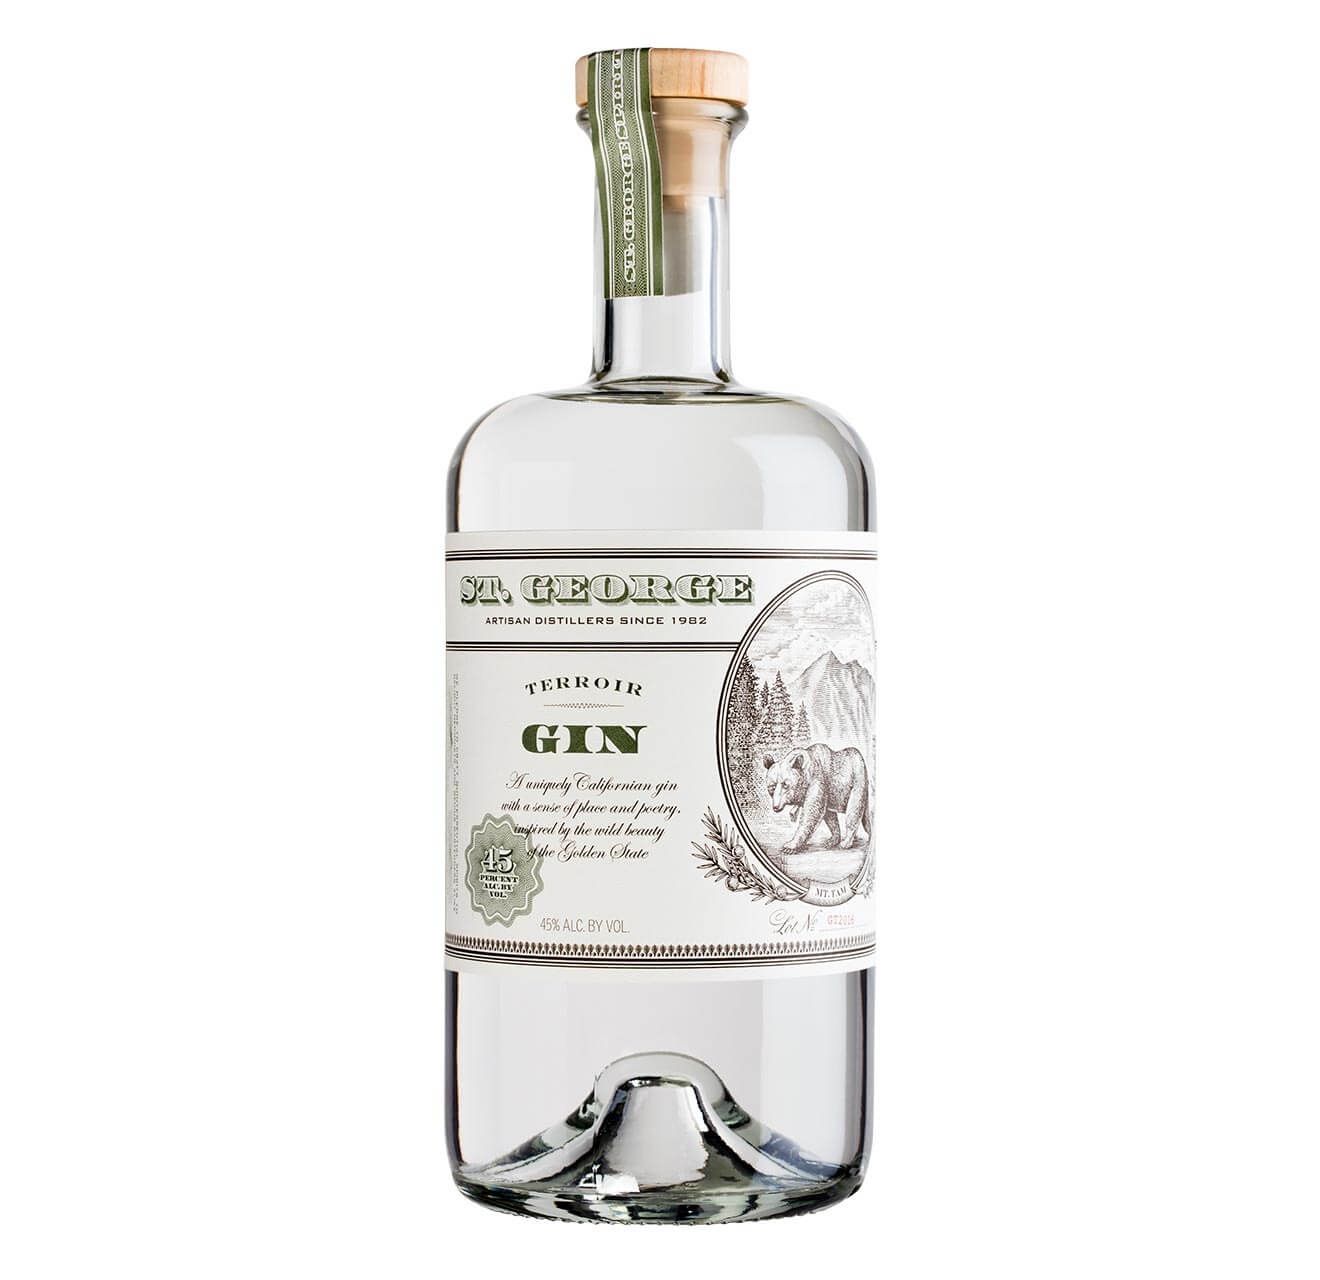 St. George Terroir Gin, bottle on white